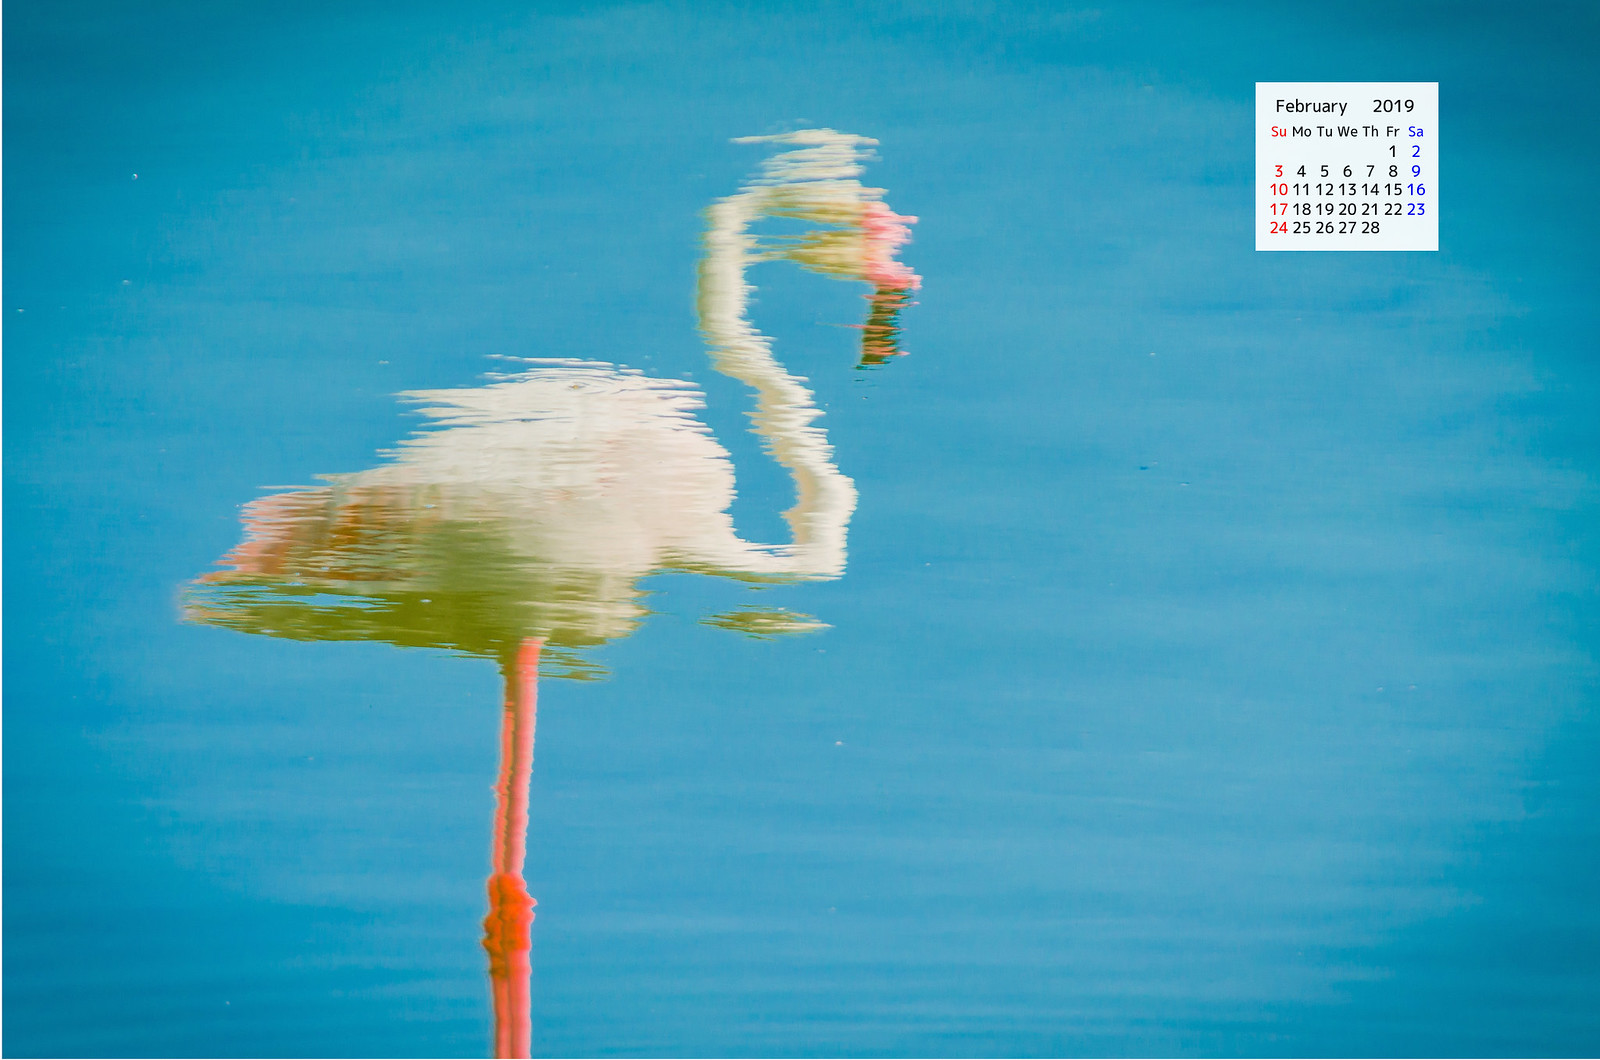 Free download February 2019 Wallpaper Calendar - Dubai Flamingo